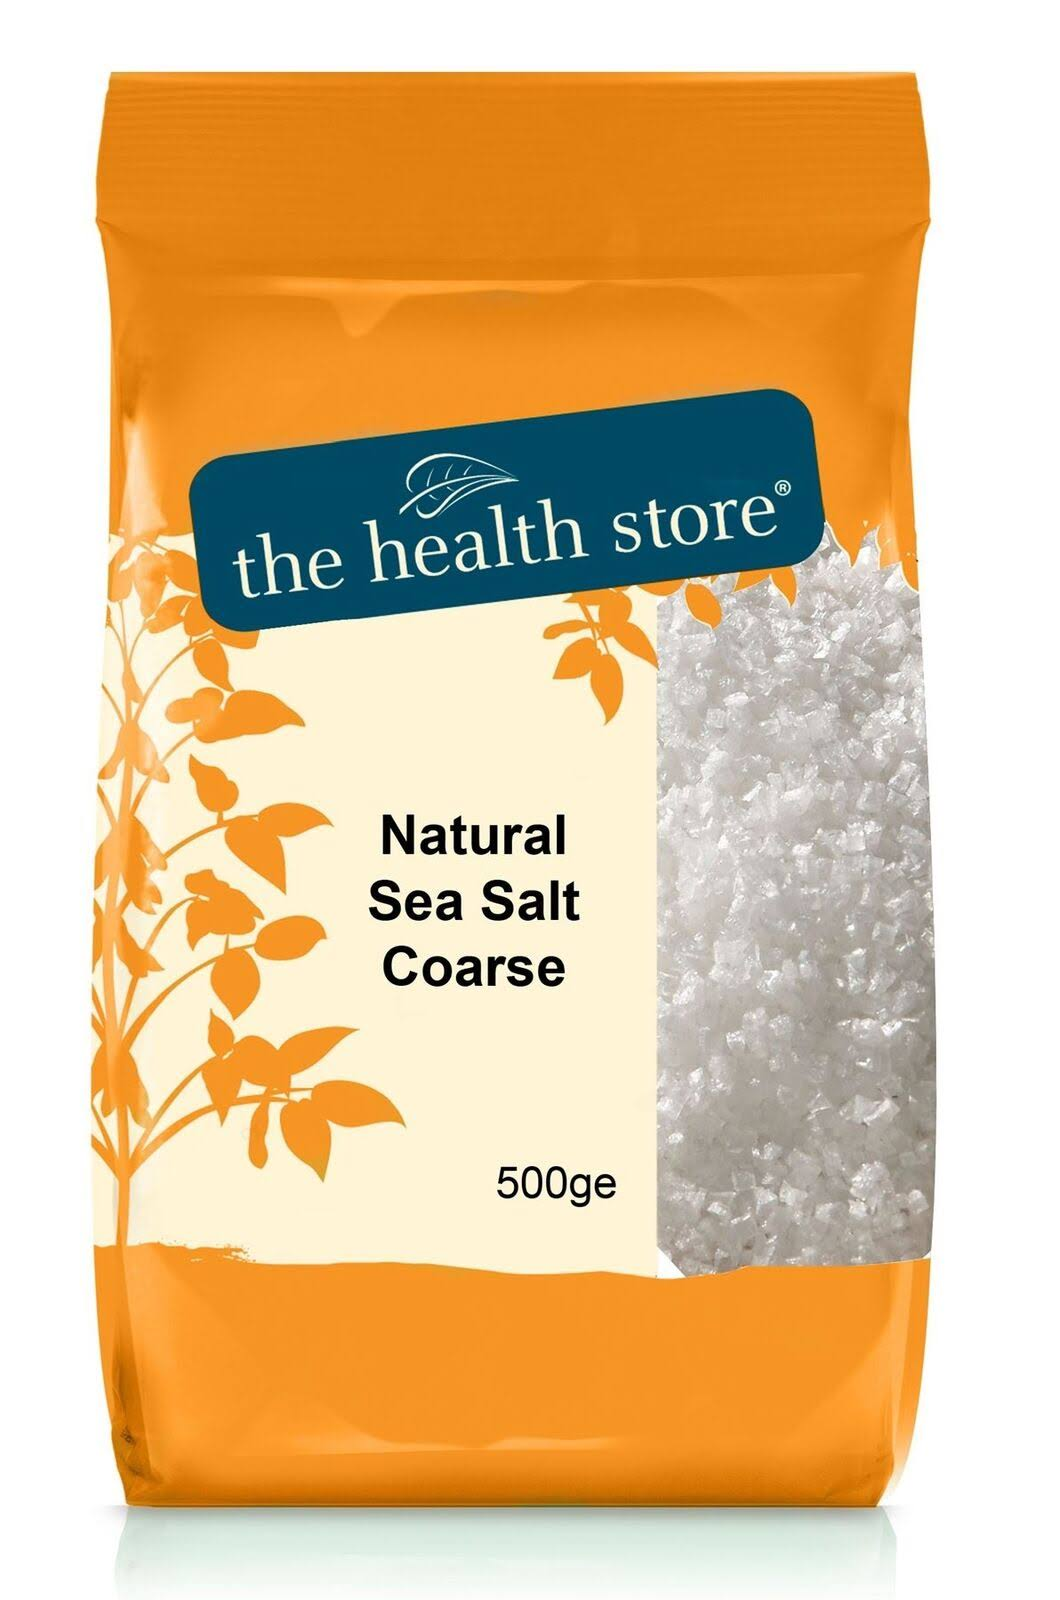 Ths Sea Salt - Natural Sea Salt Coarse 500ge